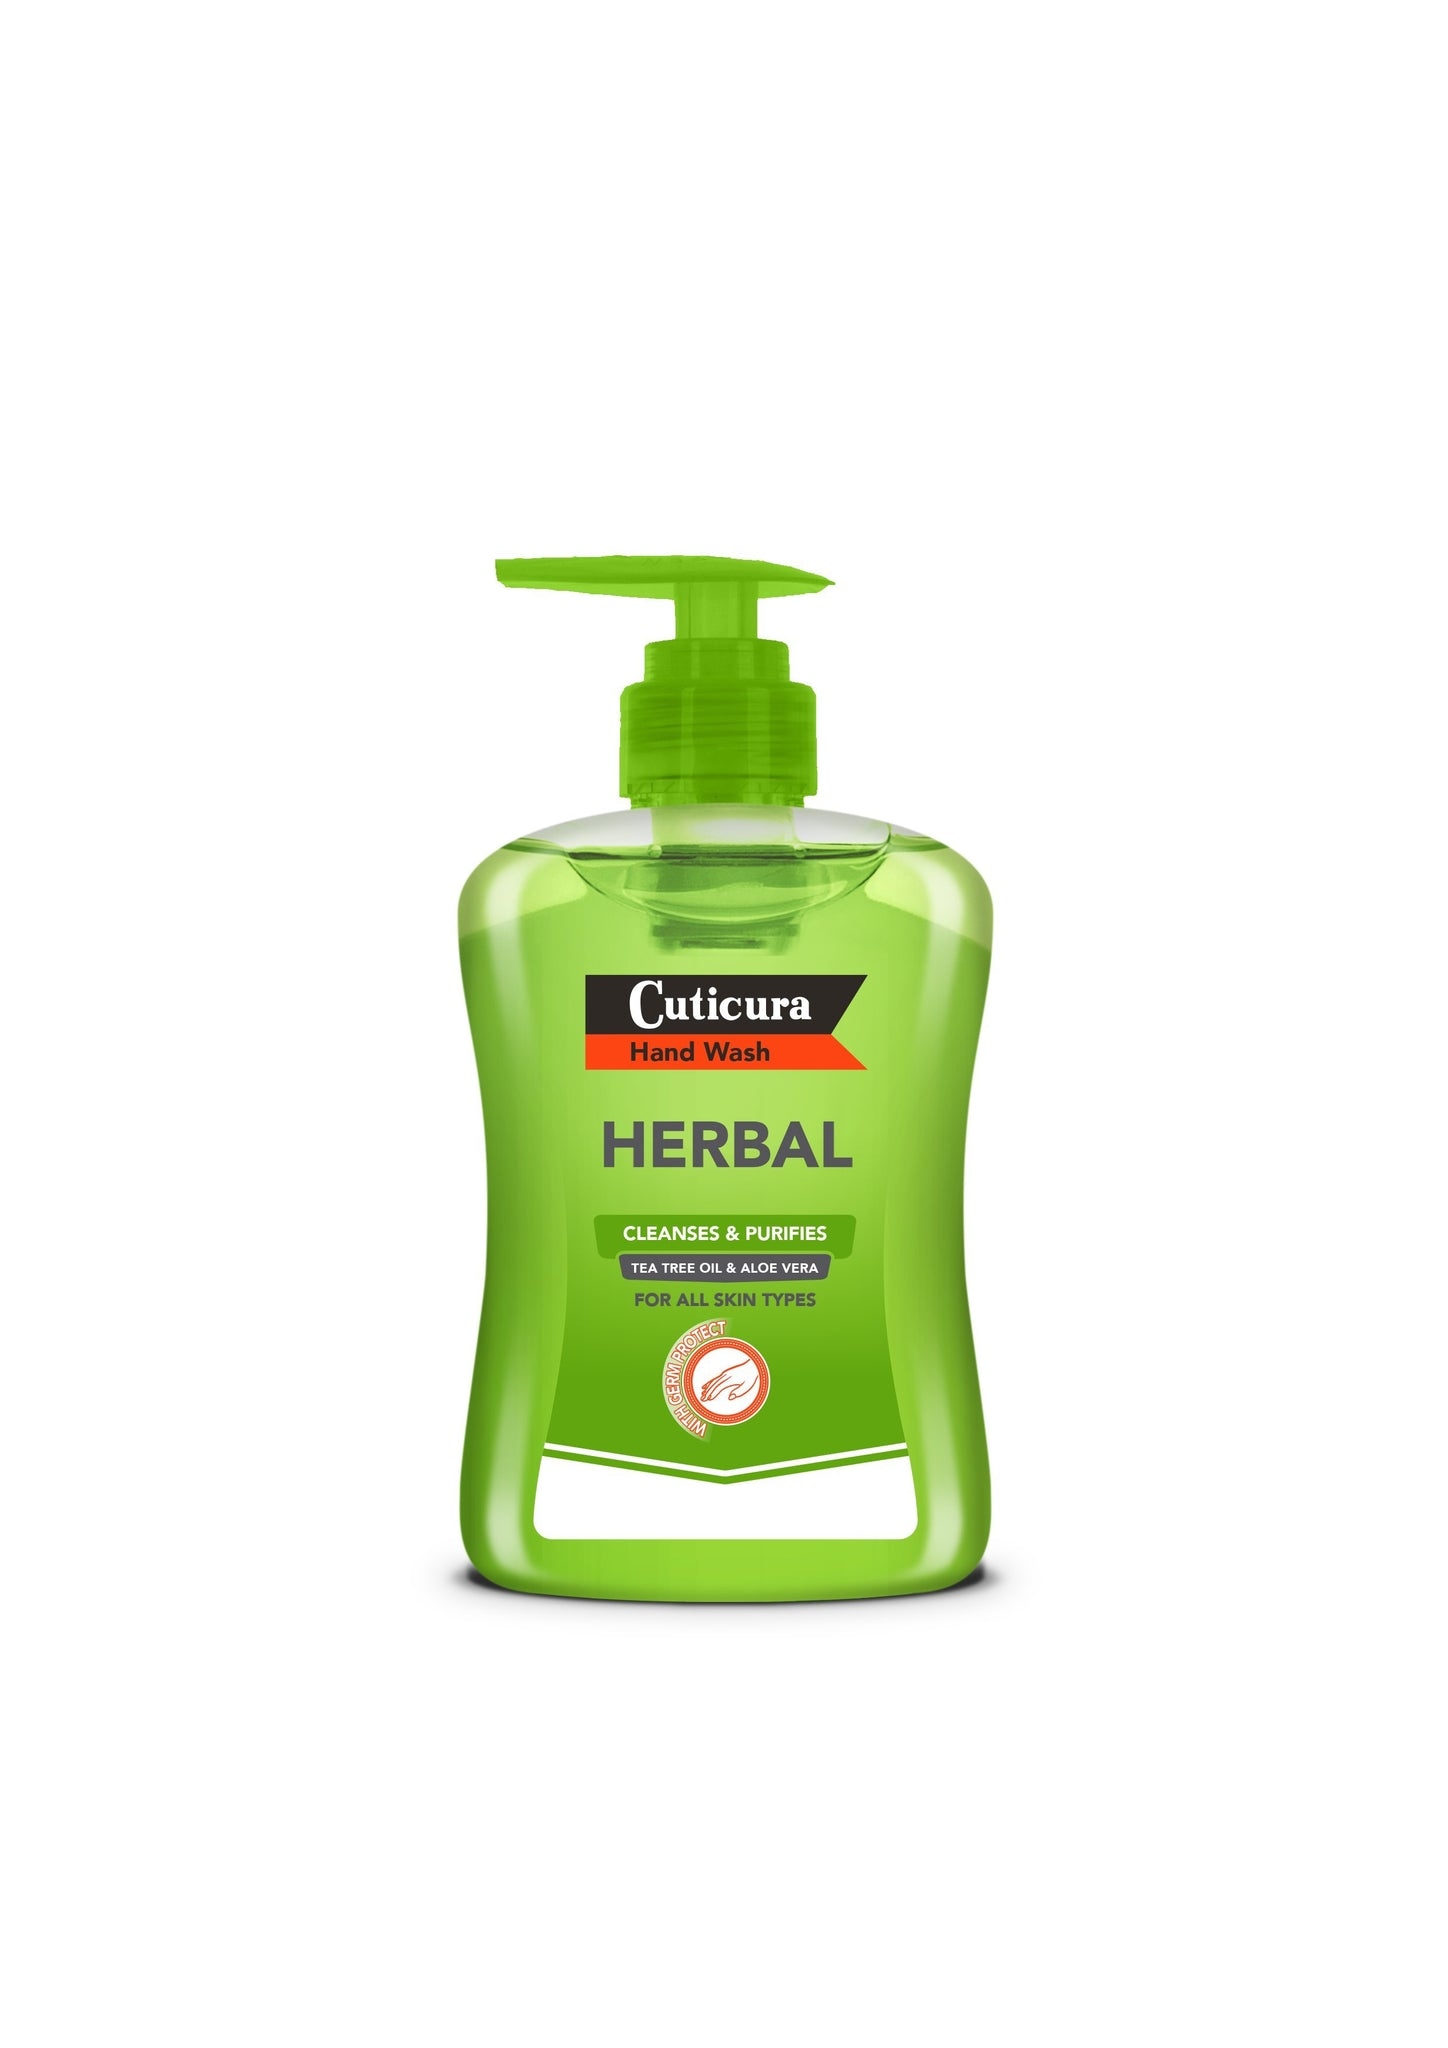 Cuticura - Herbal Hand Wash - 300ml 24-Pack